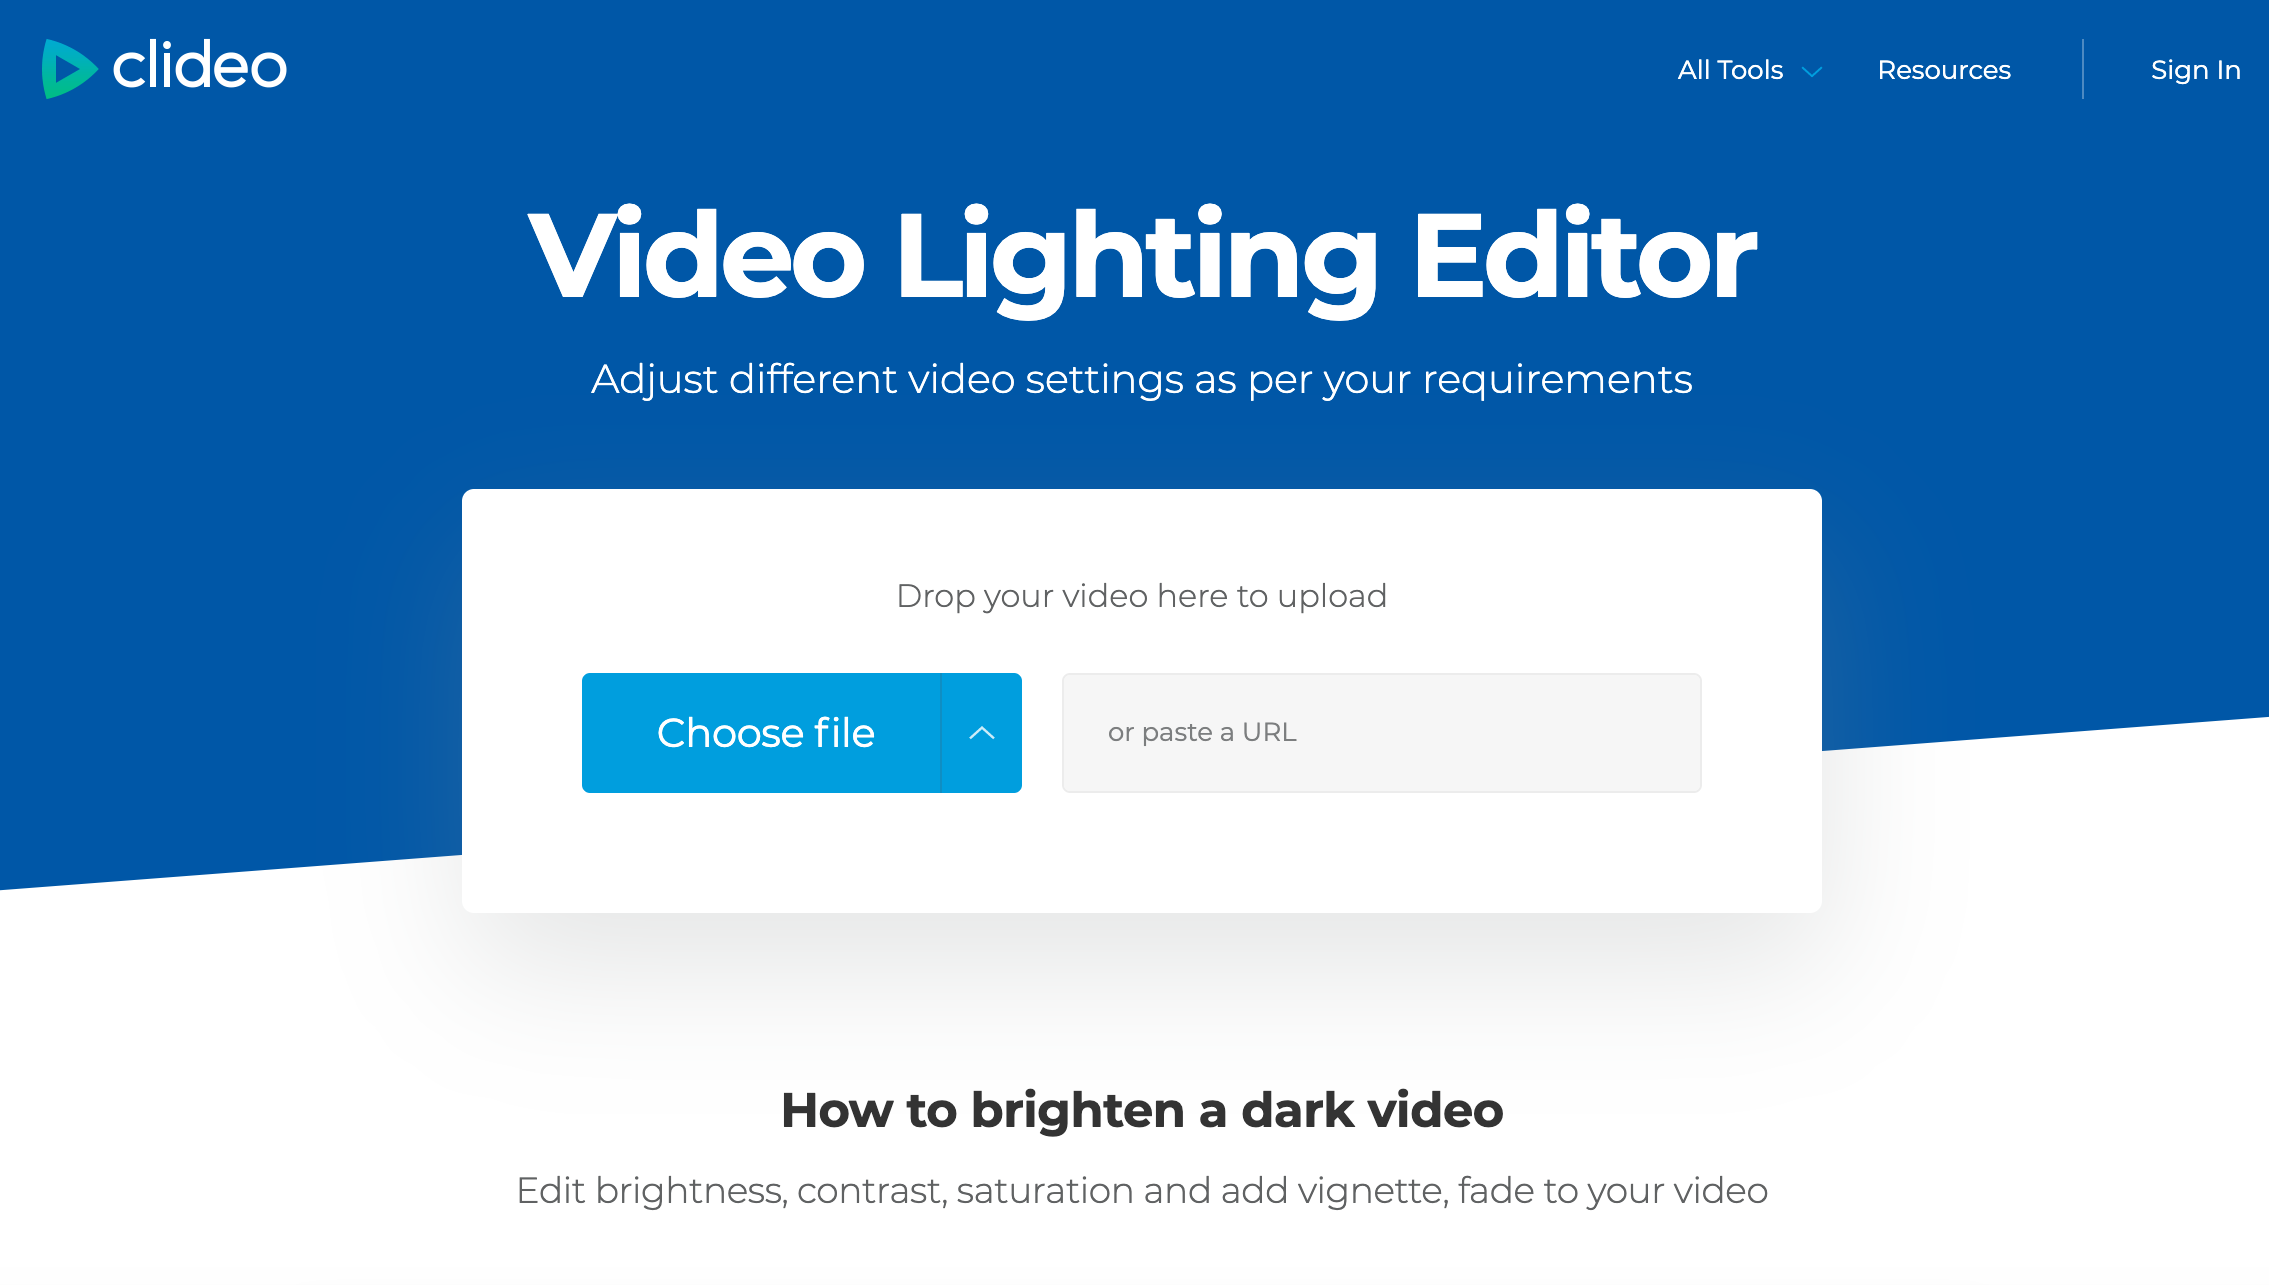 Upload a video file you want to brighten